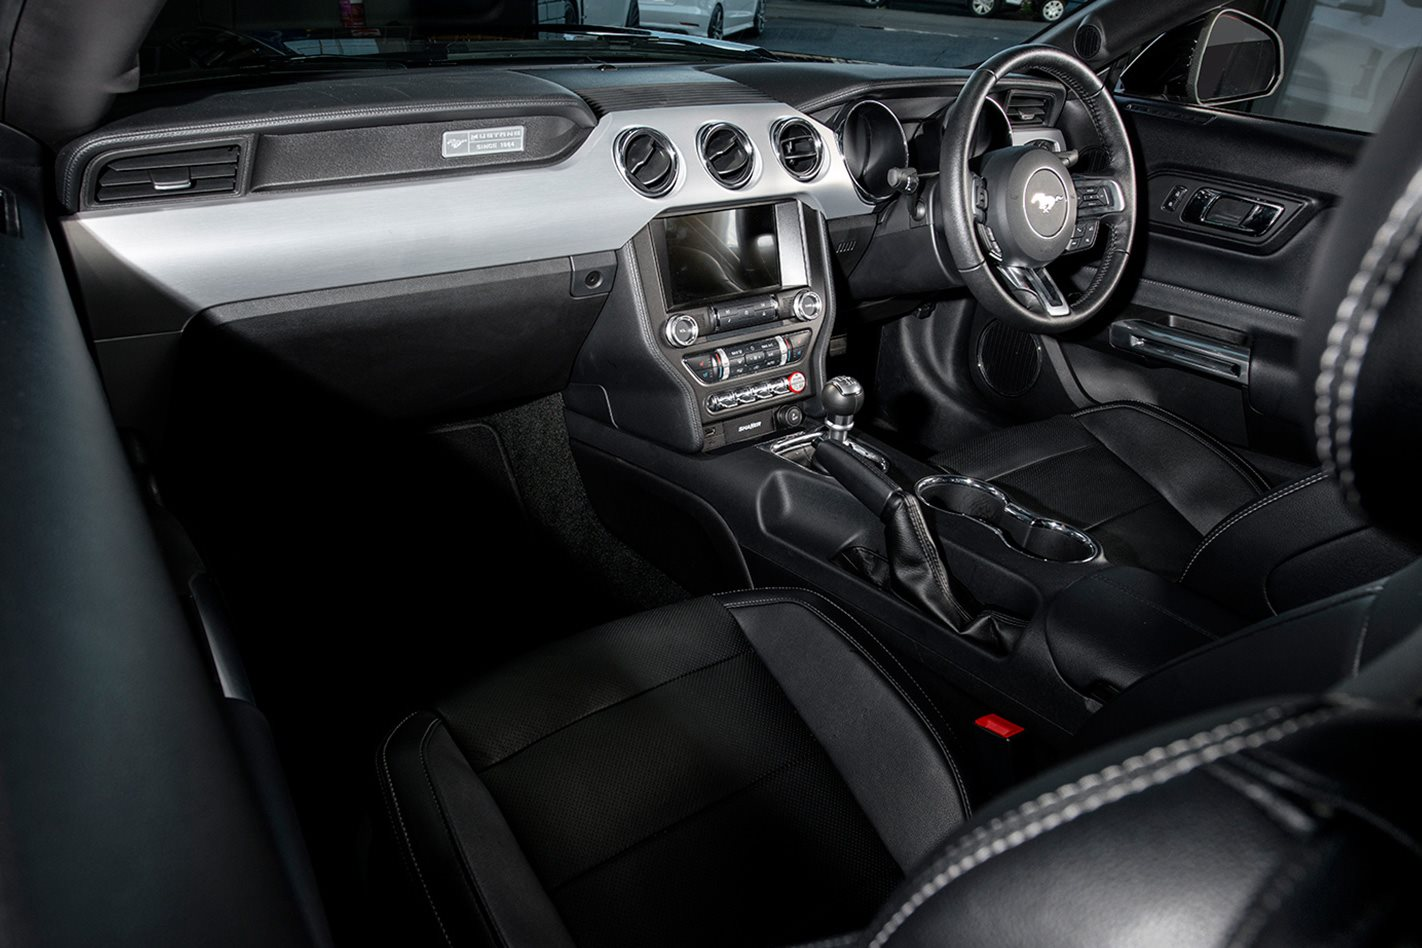 Tunehouse-Ford-Mustang-GT-interior.jpg